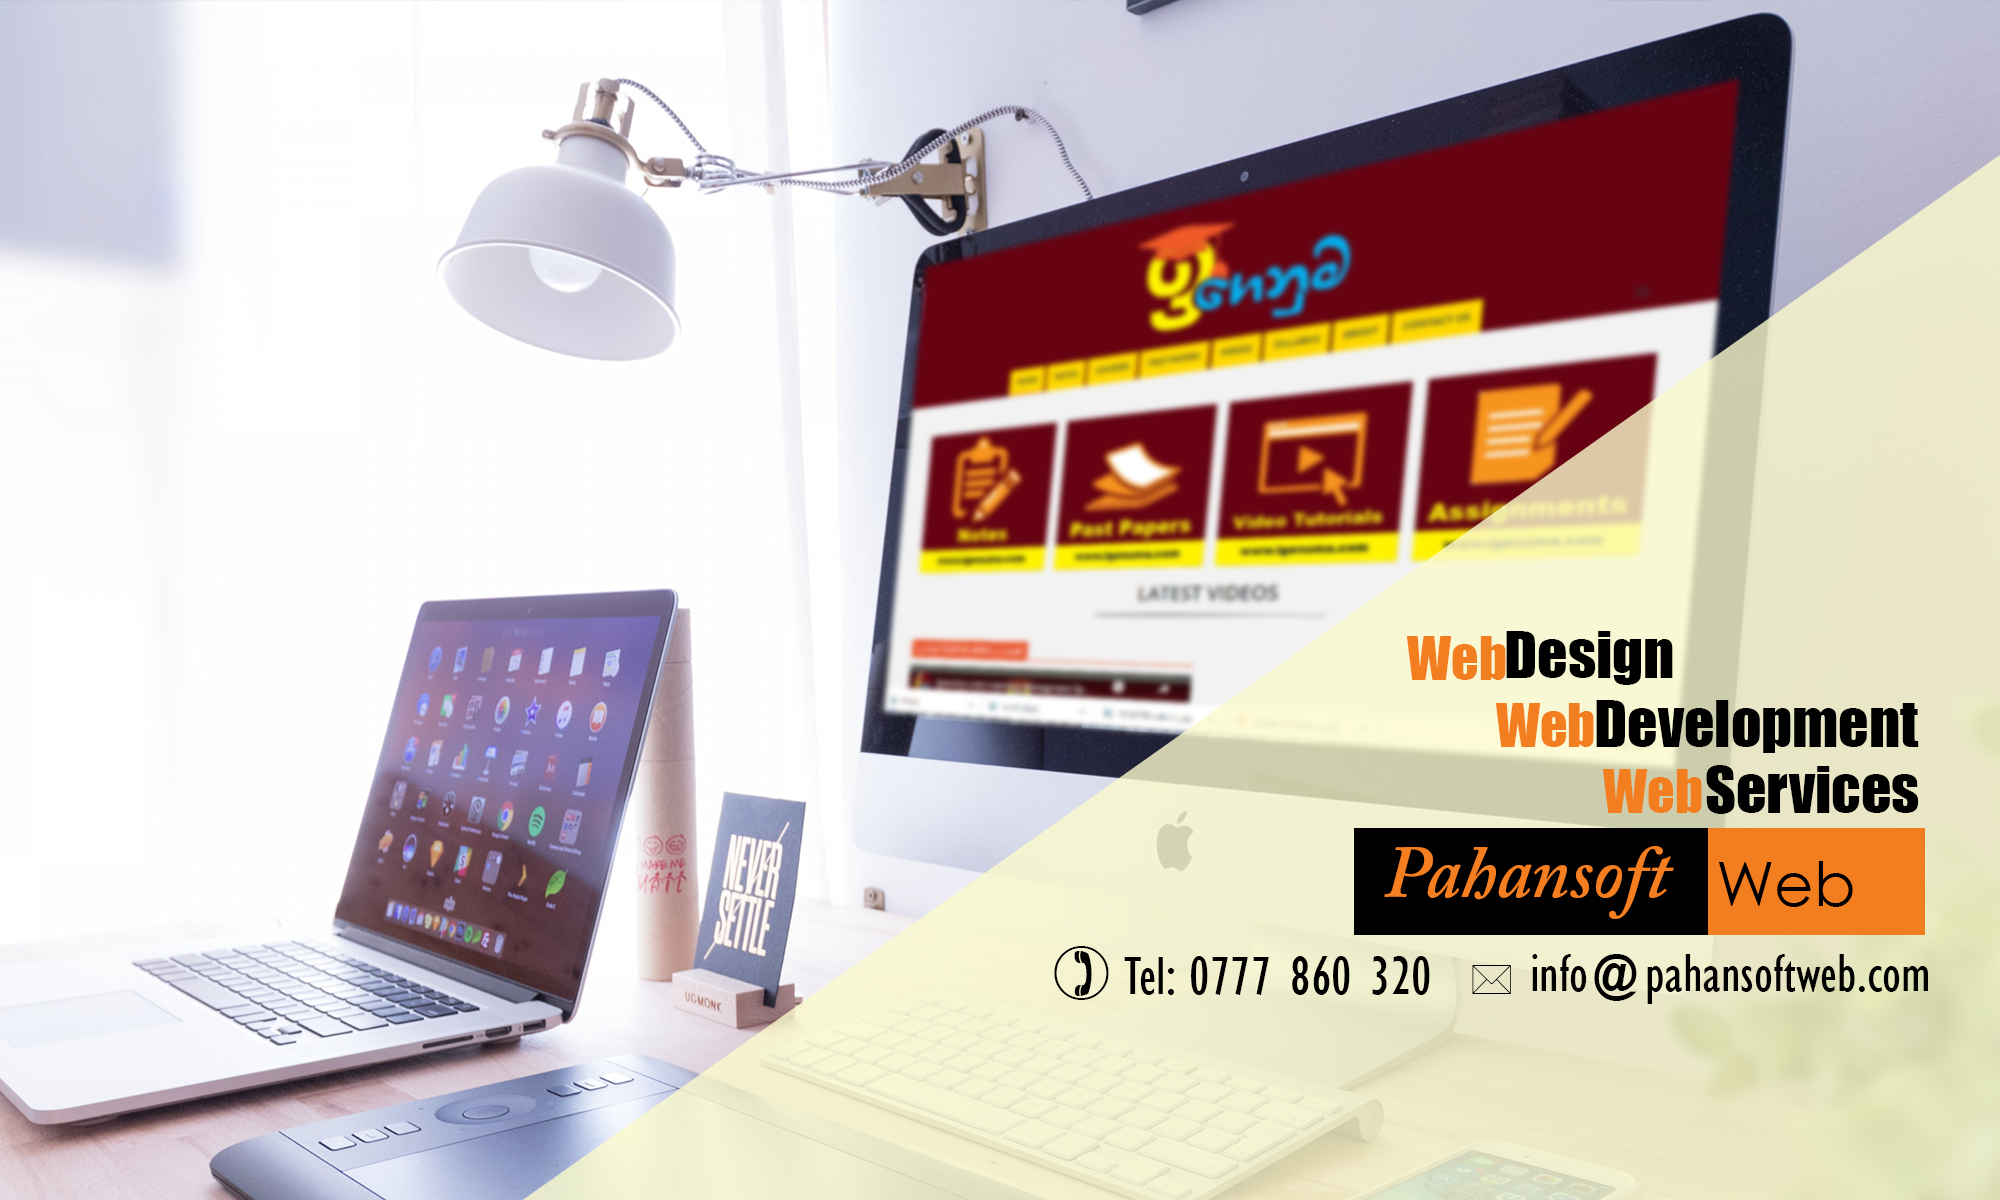 Pahansoft Web